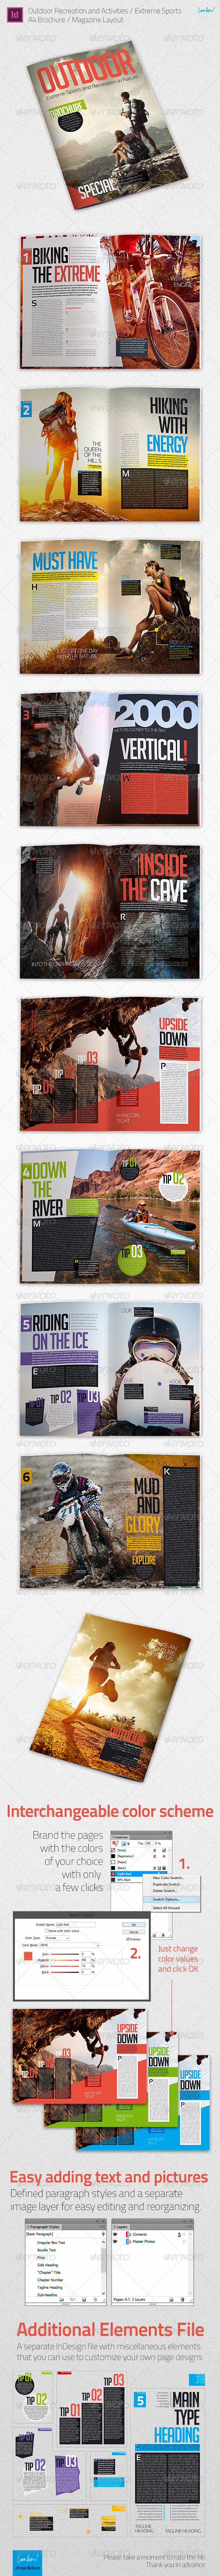 Outdoor Recreation Extreme Sports A4 Brochure